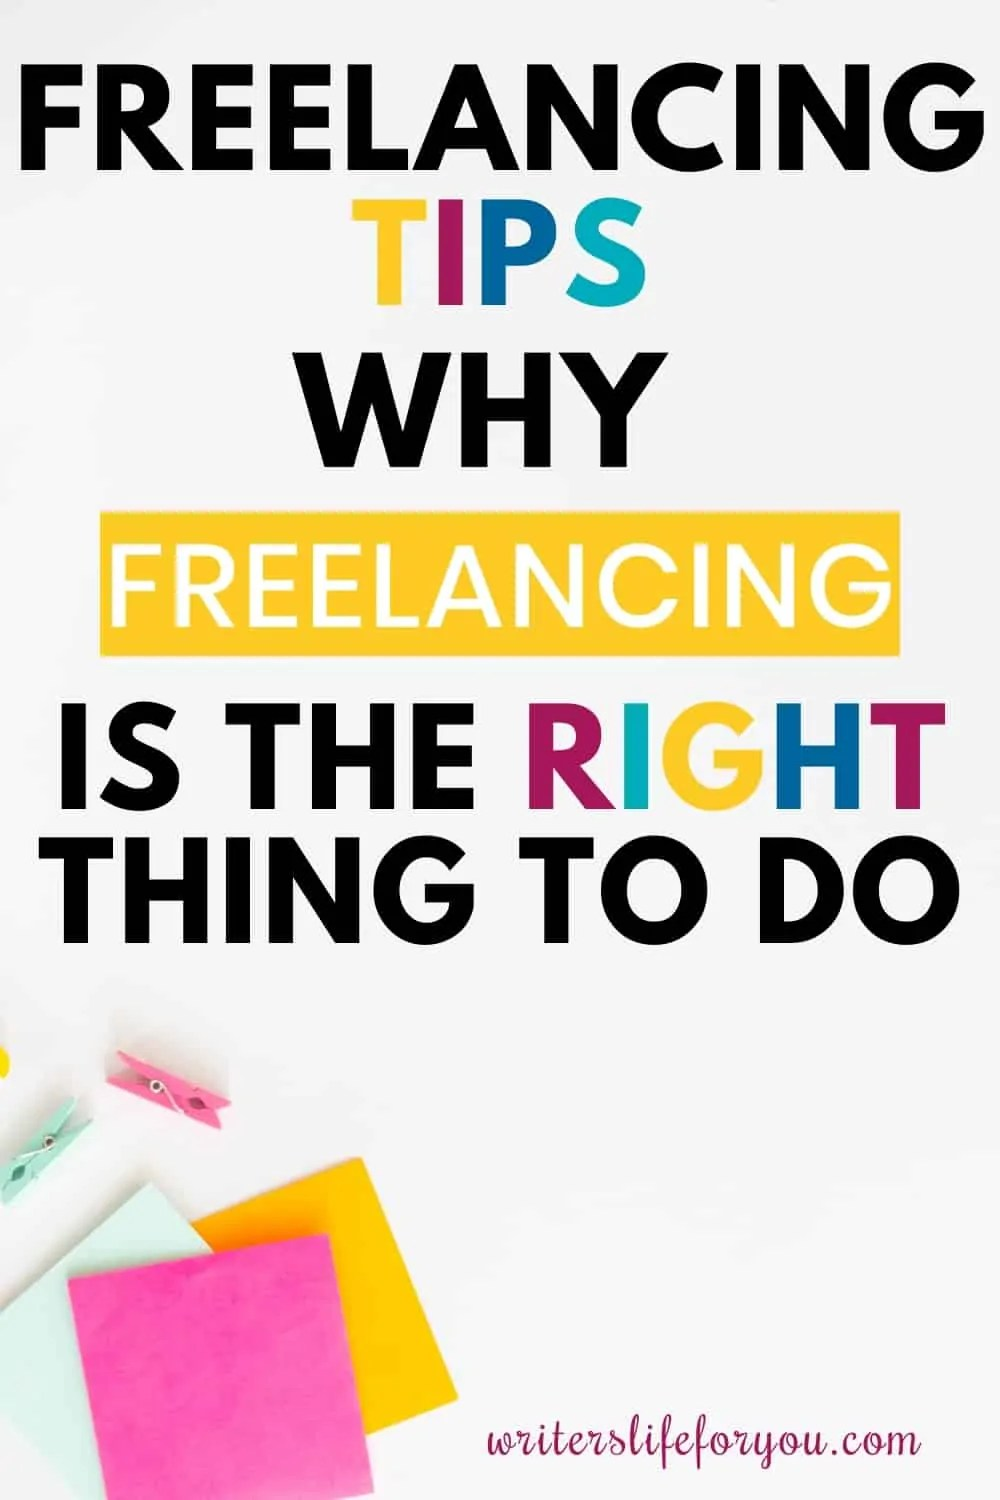 Why Freelancing from Home is the Right Thing to Do and How to Ditch Your Day Job